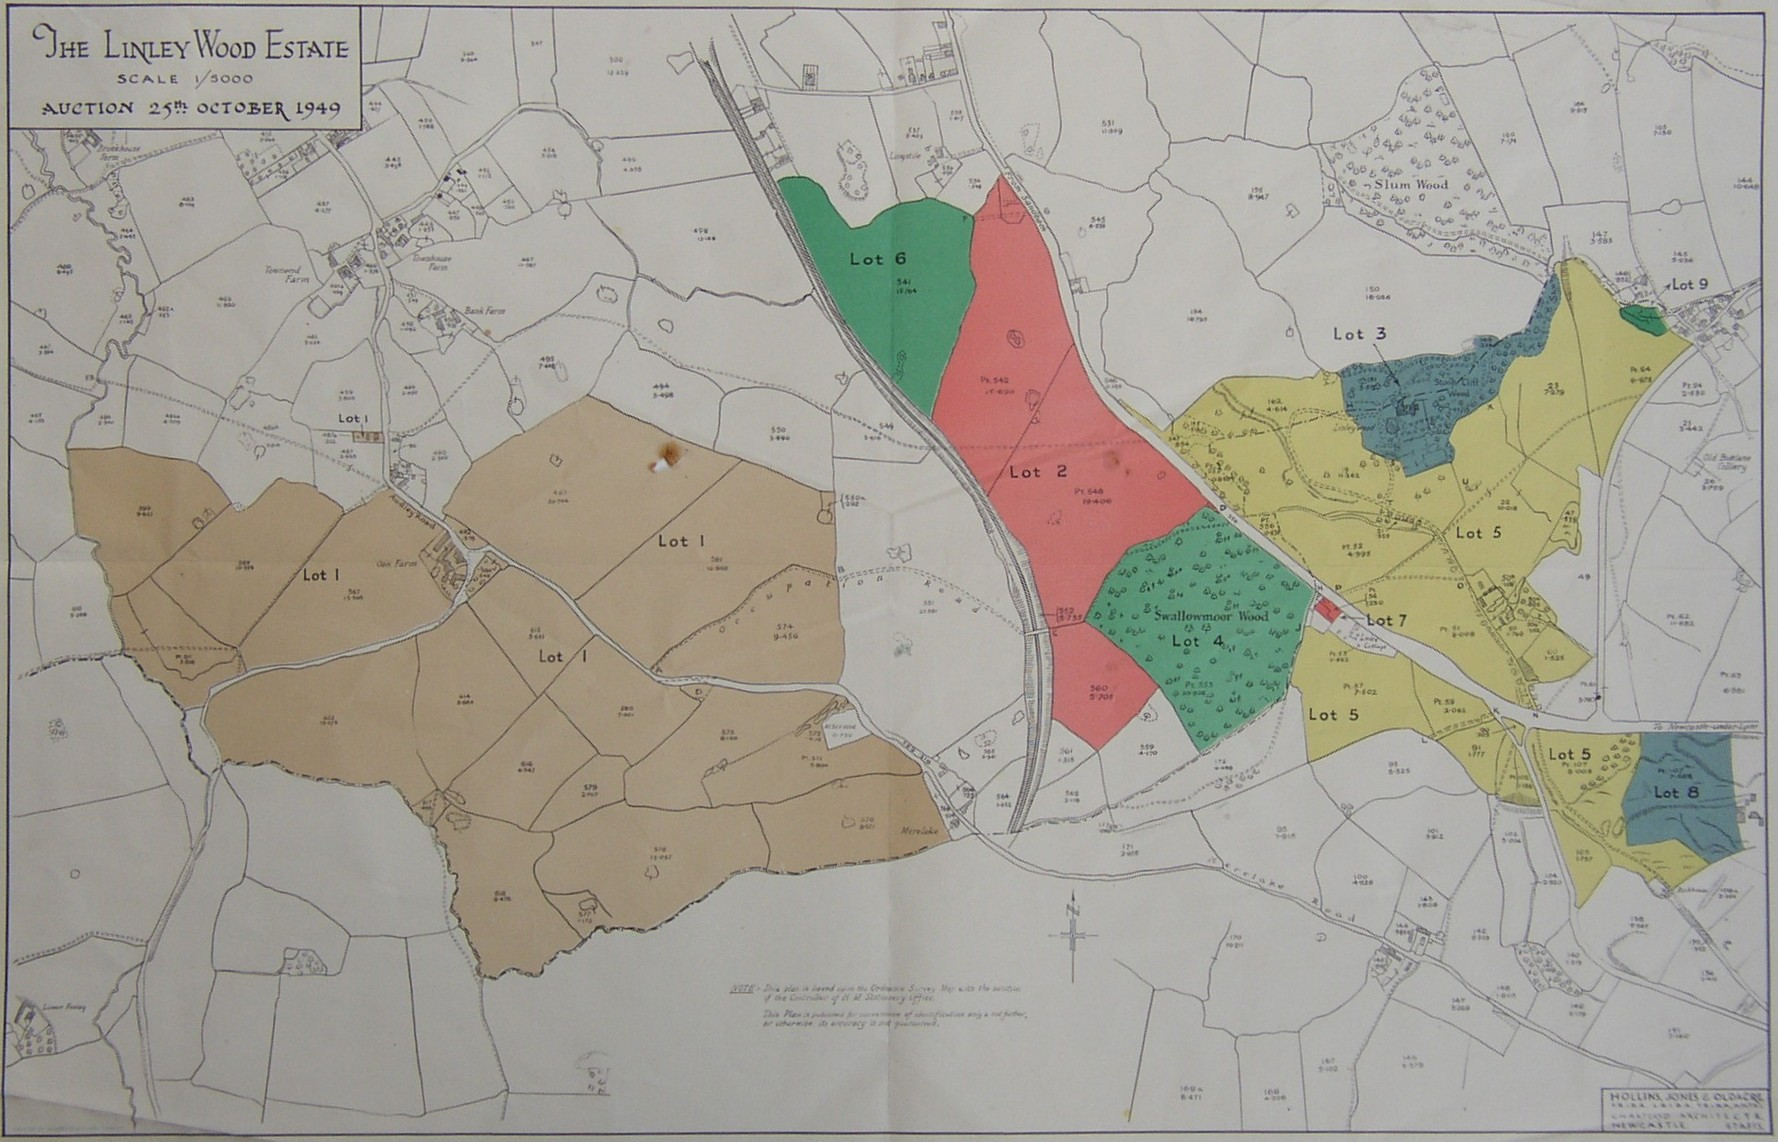 Map of the Linley Wood Estate, Talke, Staffordshire Produced for the sale of the estate in 1949 Home of the Caldwell, Marsh-Caldwell and Heath-Caldwell family